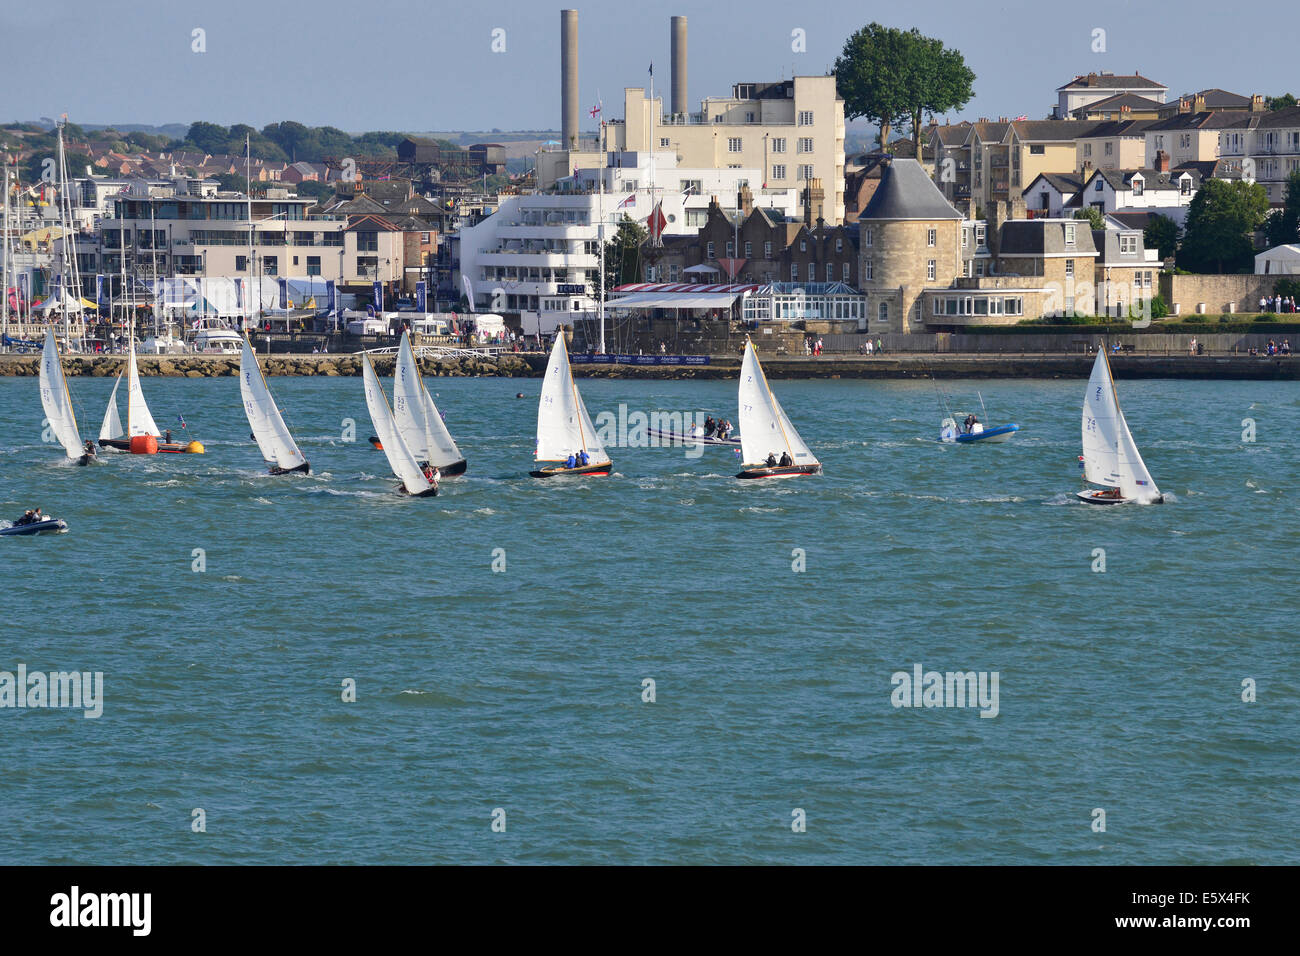 Isle of Wight, UK. 6th Aug, 2014. Aberdeen Asset Management Cowes Week, One Hour Victory' race off the Green, up Stock Photo